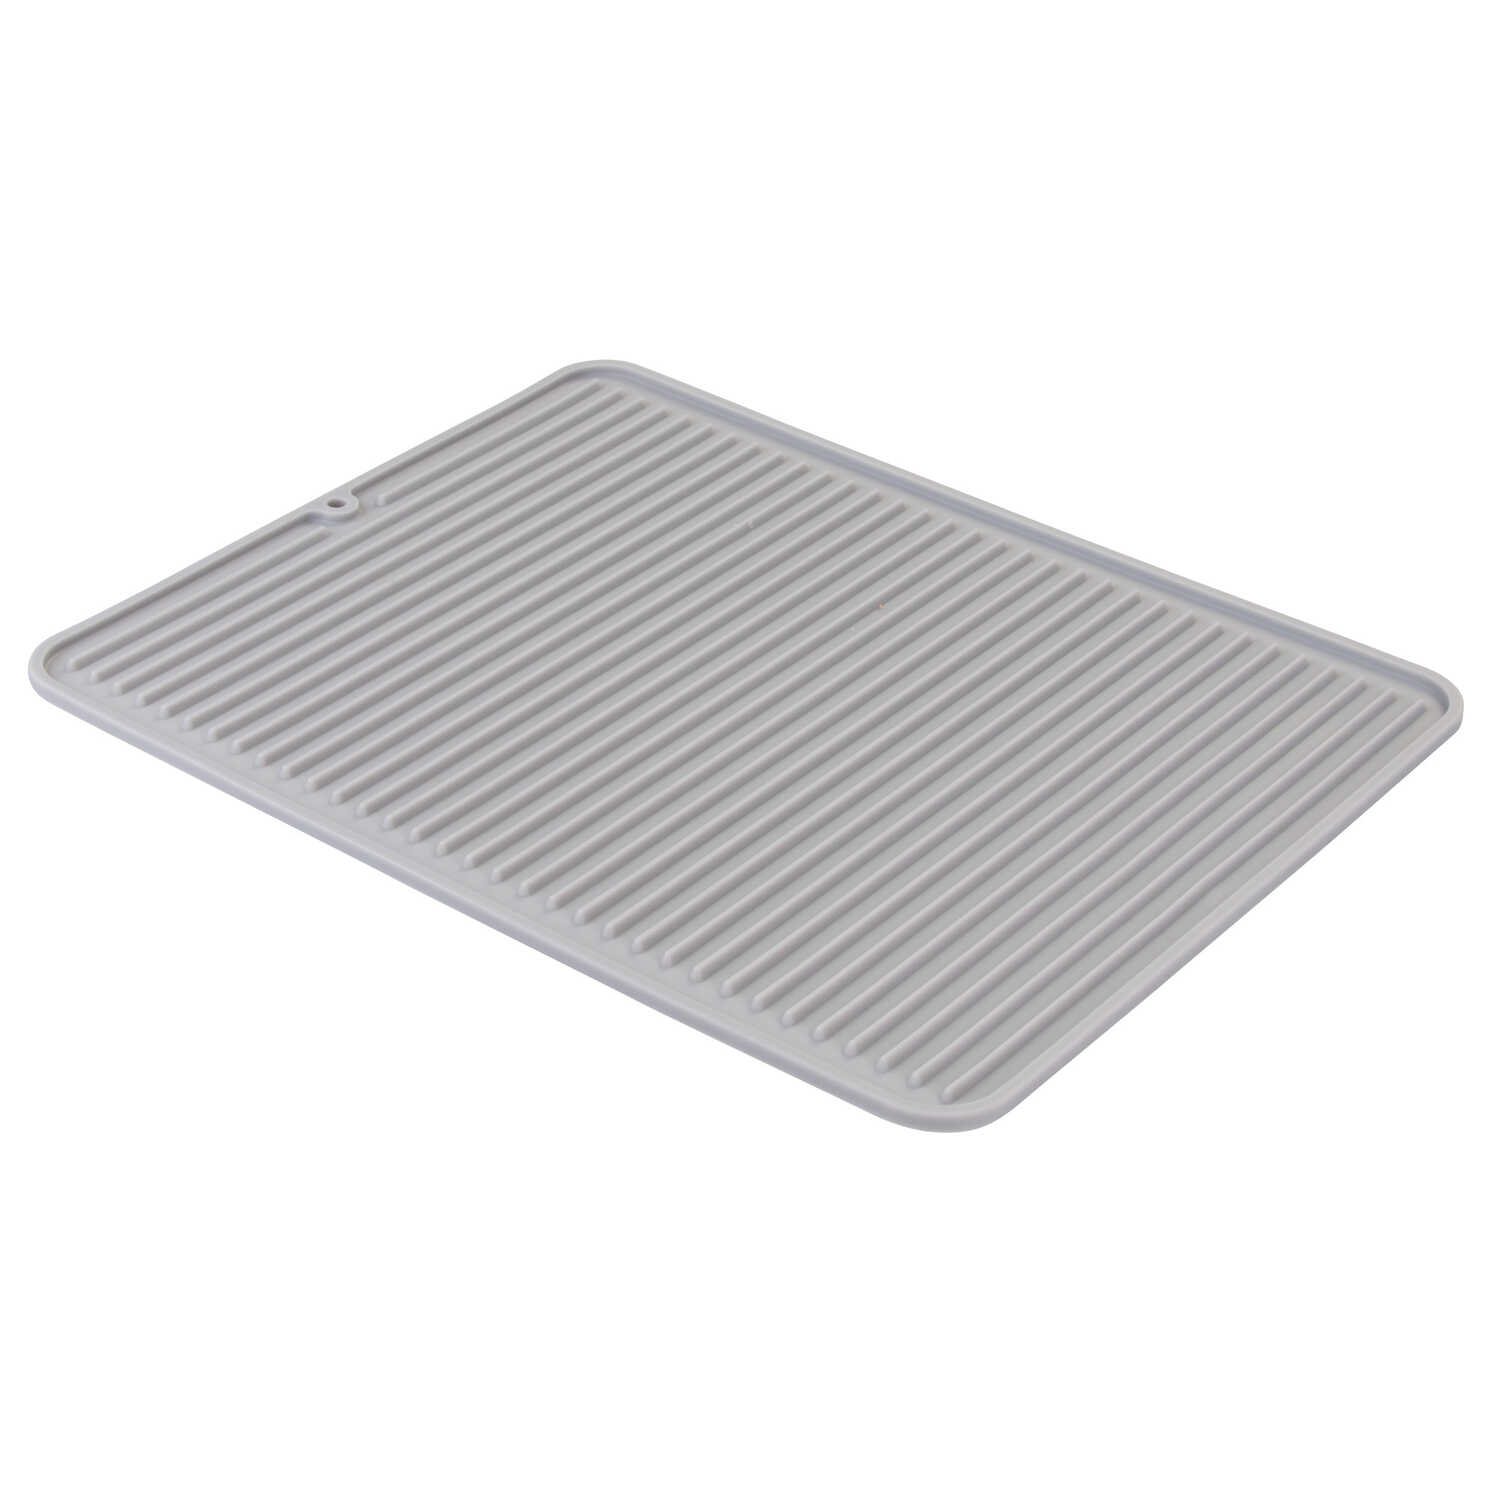 InterDesign  Lineo  12-1/2 in. W x 16 in. L Drying Mat